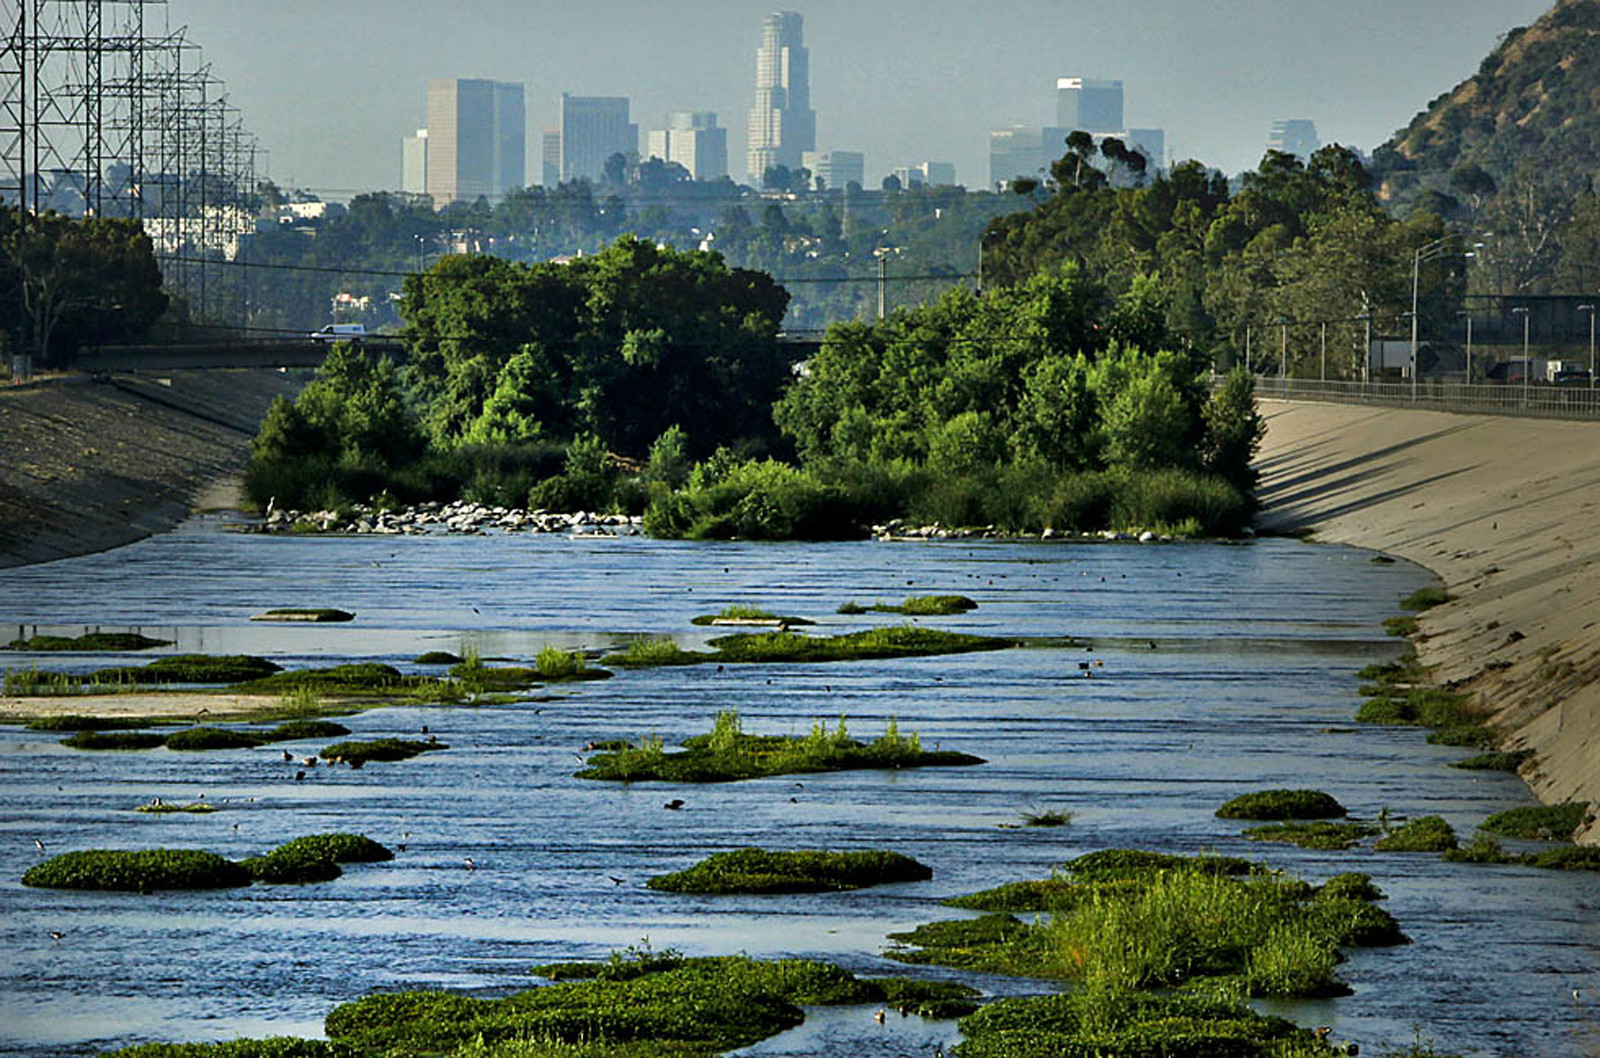 Architect Frank Gehry is helping L.A. with its Los Angeles River master plan, but secrecy troubles some - LA Times